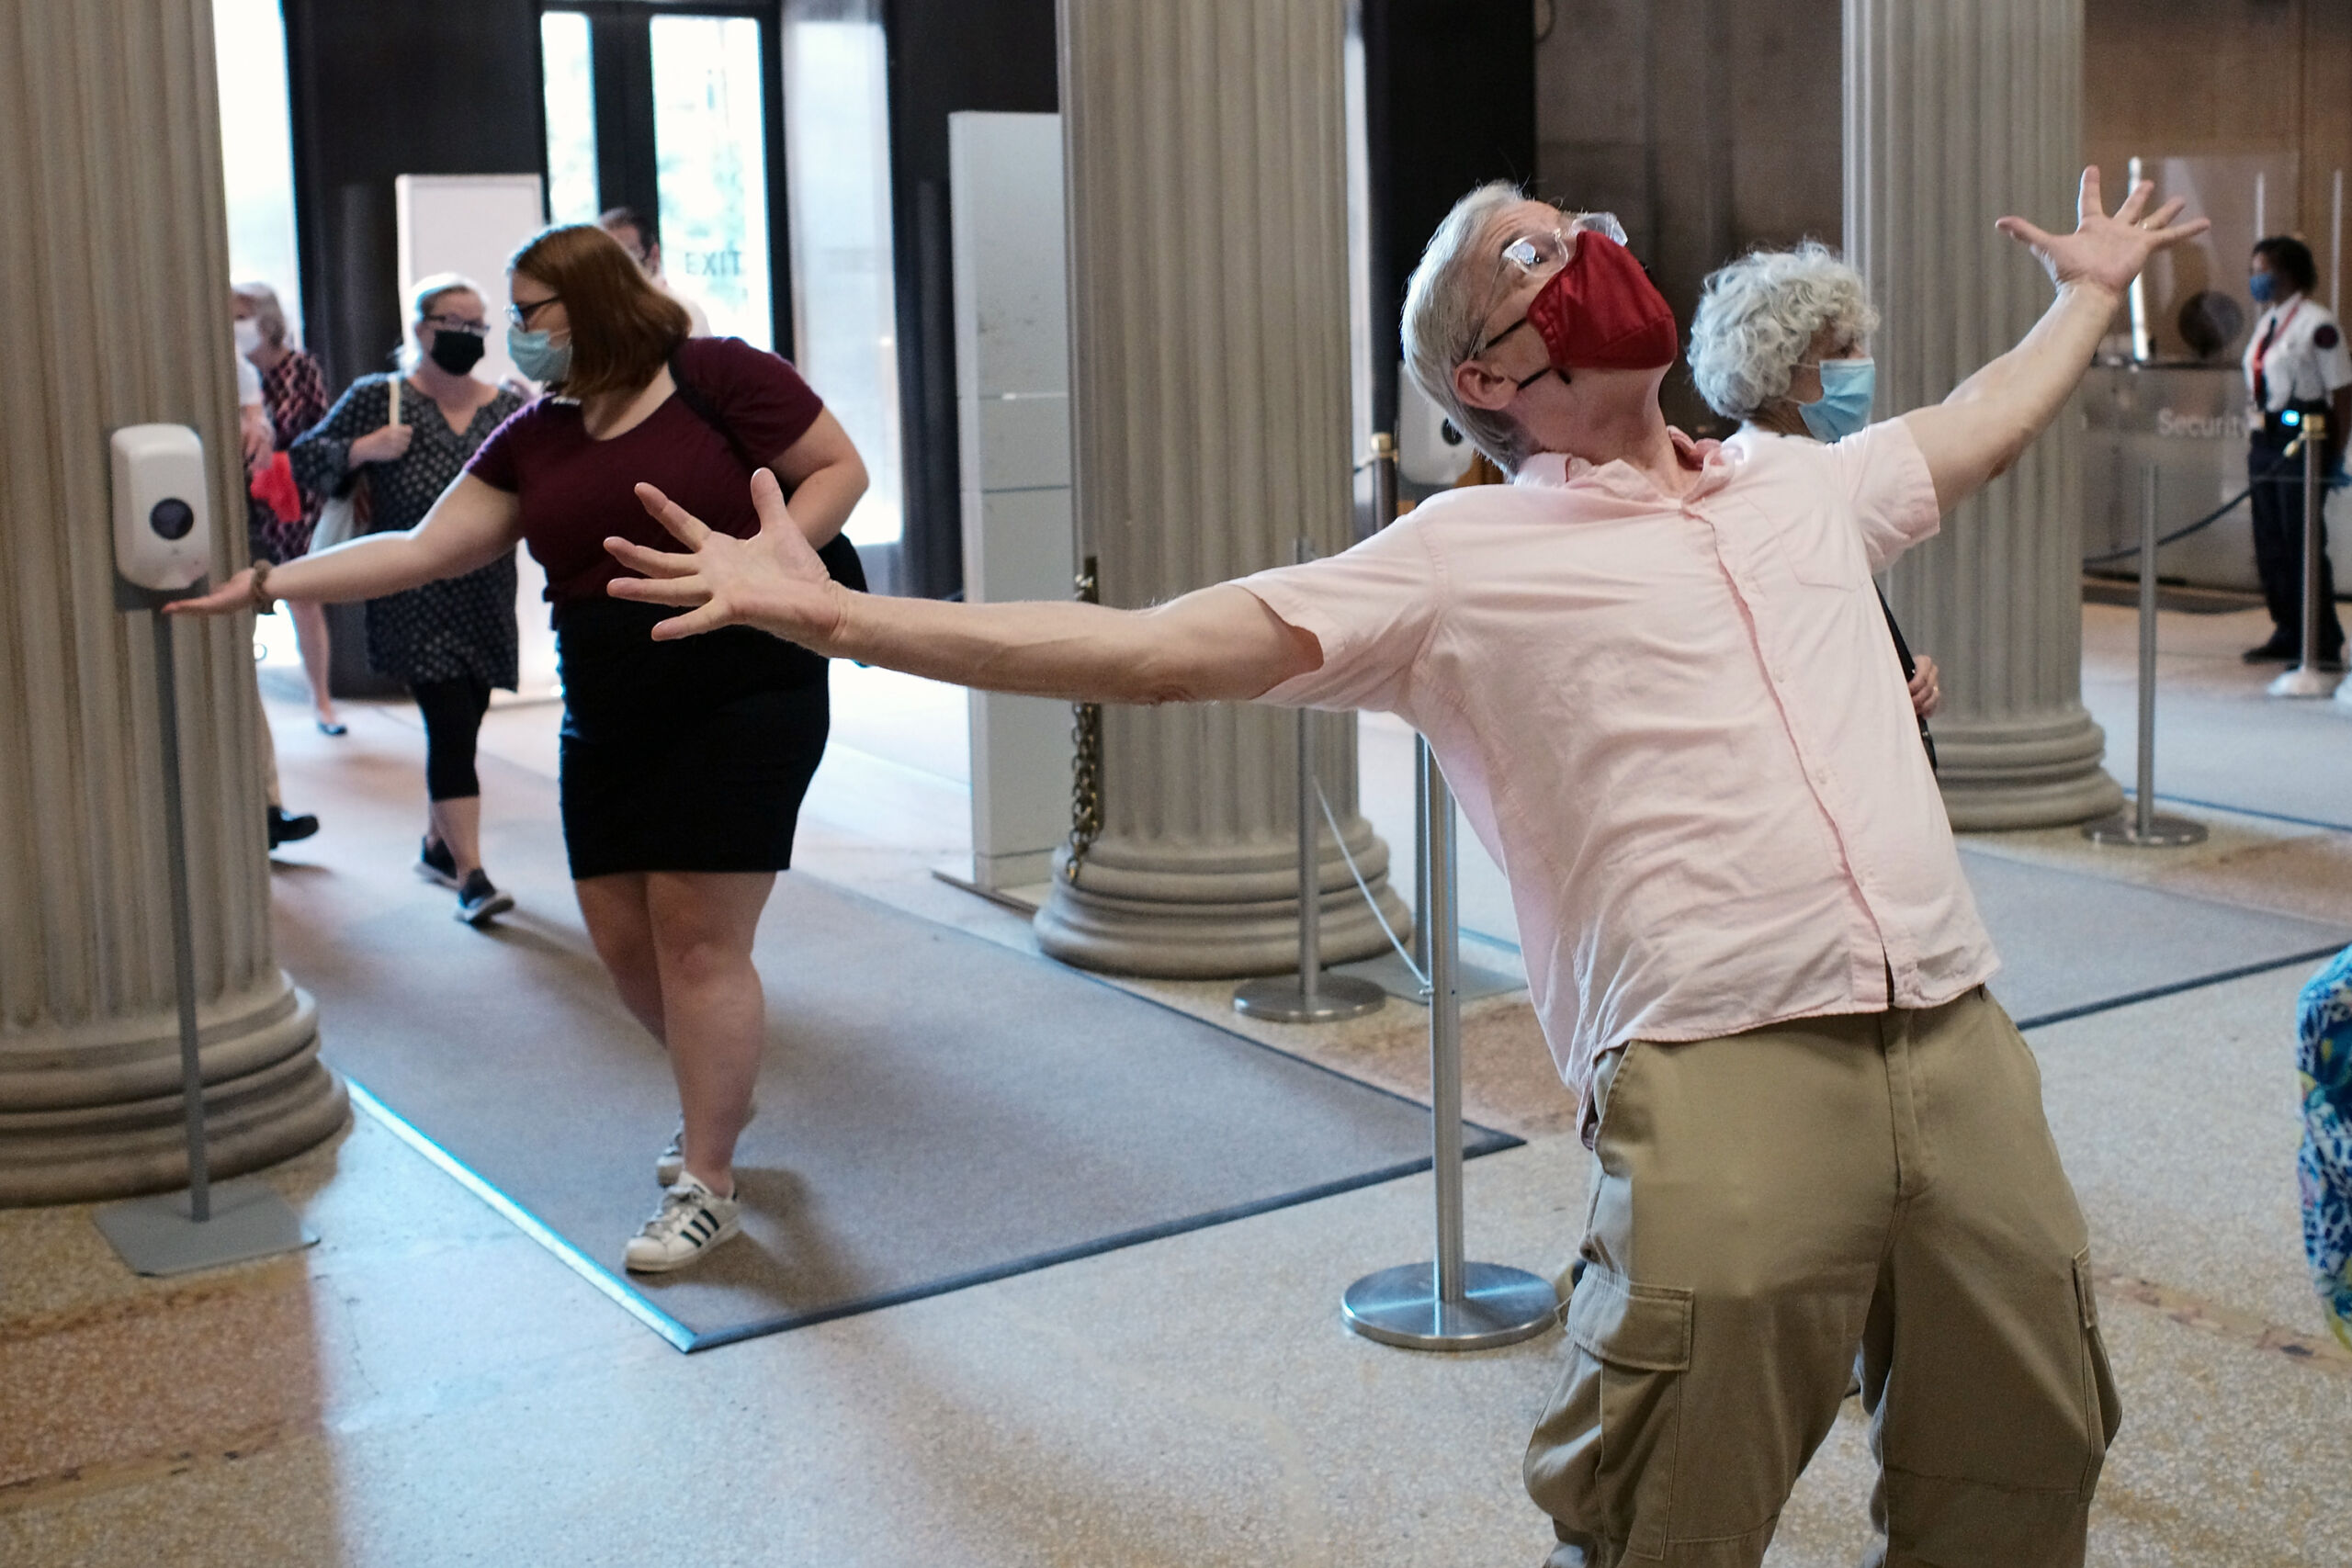 Visitors celebrate as The Met reopens in August 2020 after the closure due to Covid 19. Credit: Taylor Hill © Taylor Hill, 2020. Image courtesy PBS.